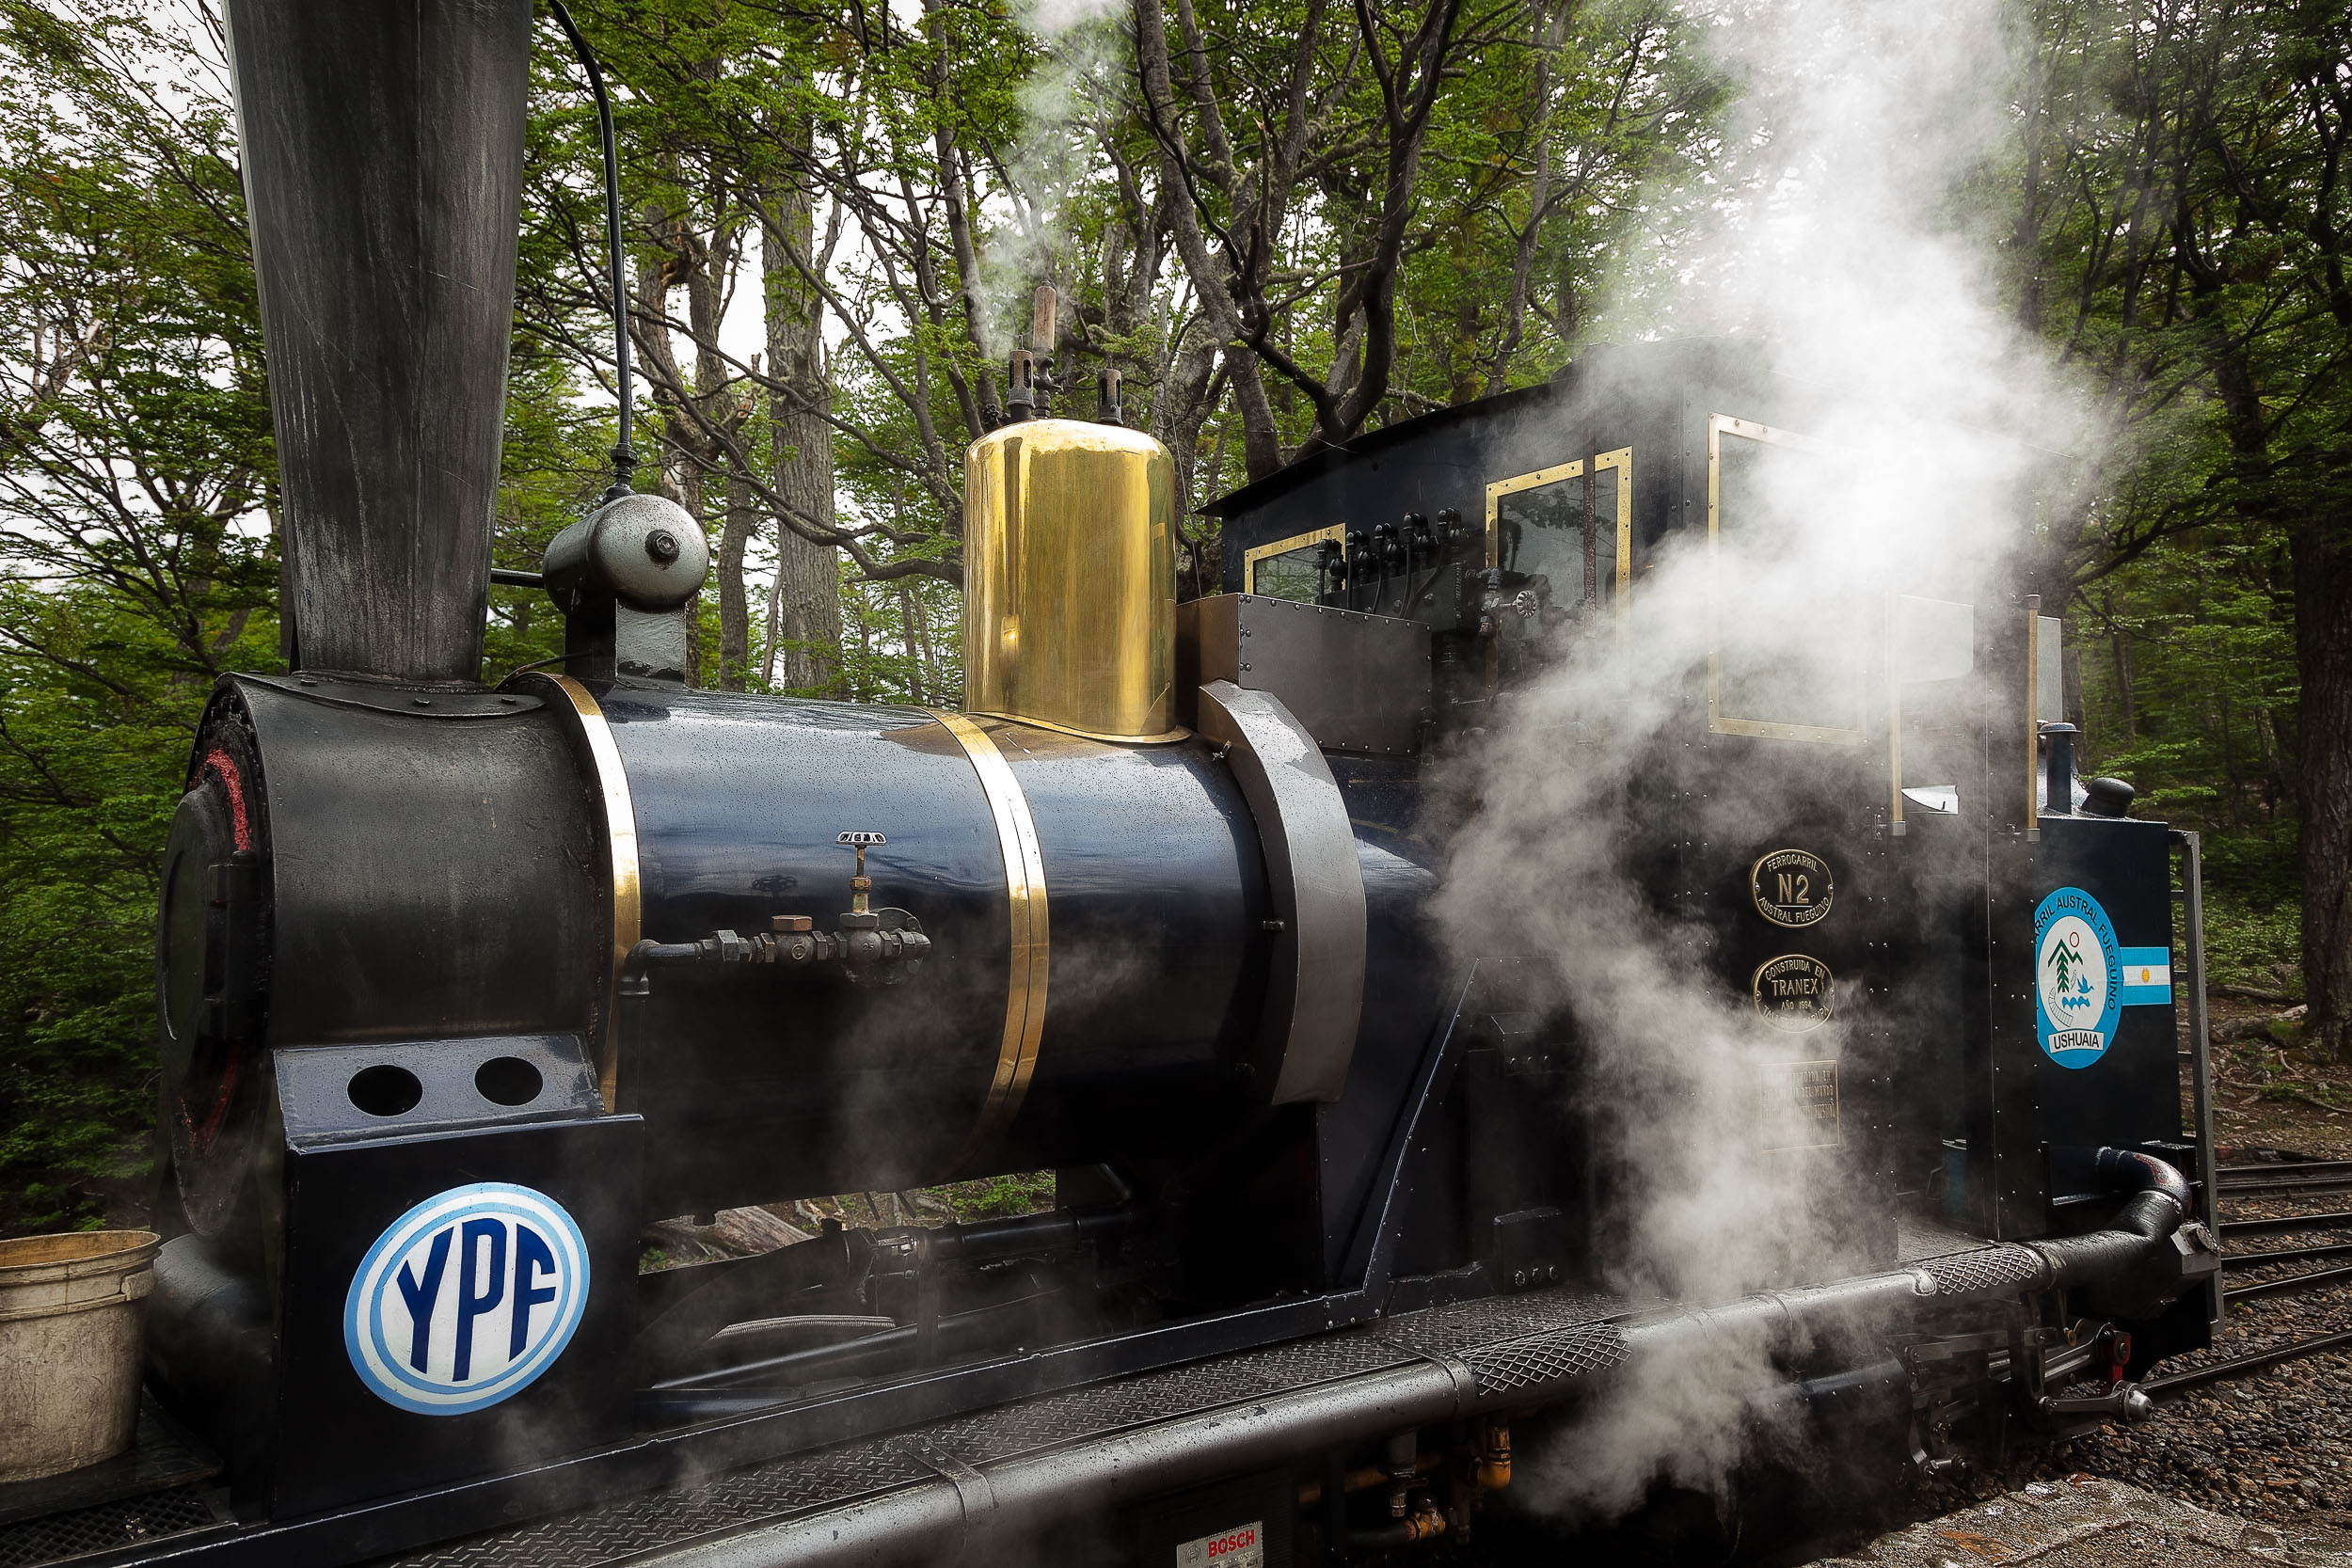 The  engine  of a lovely  steam train  in the T ierra del Fuego National Park ,  Argentina .